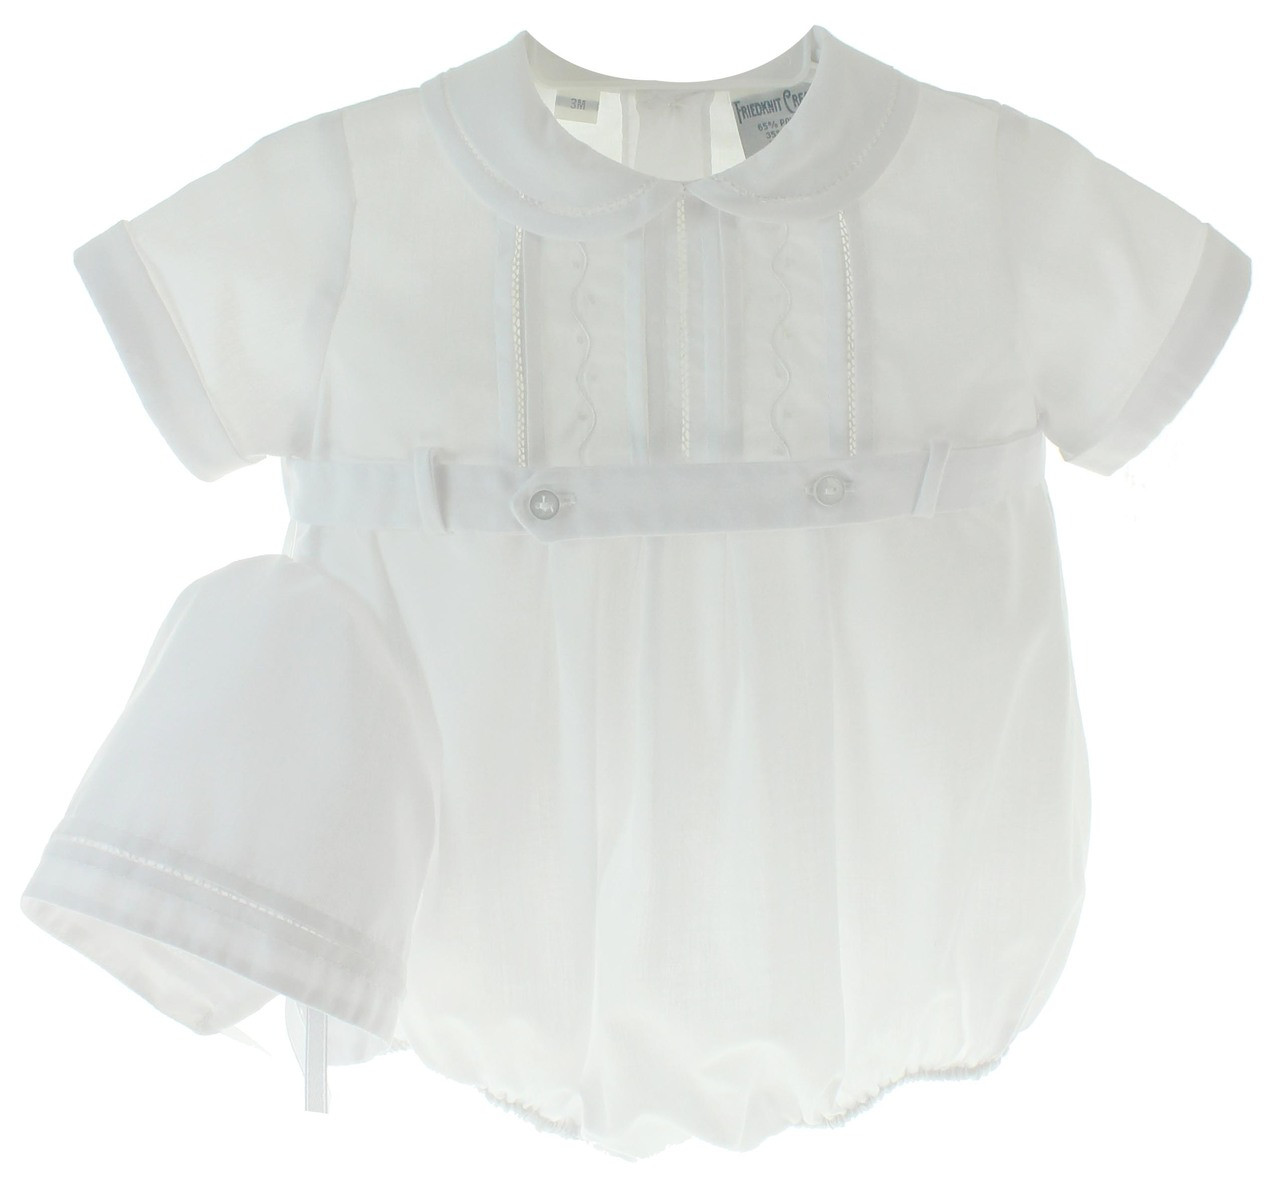 bf7fb722 Baby Boys White Christening Bubble Romper Outfit with Hat - Hiccups ...